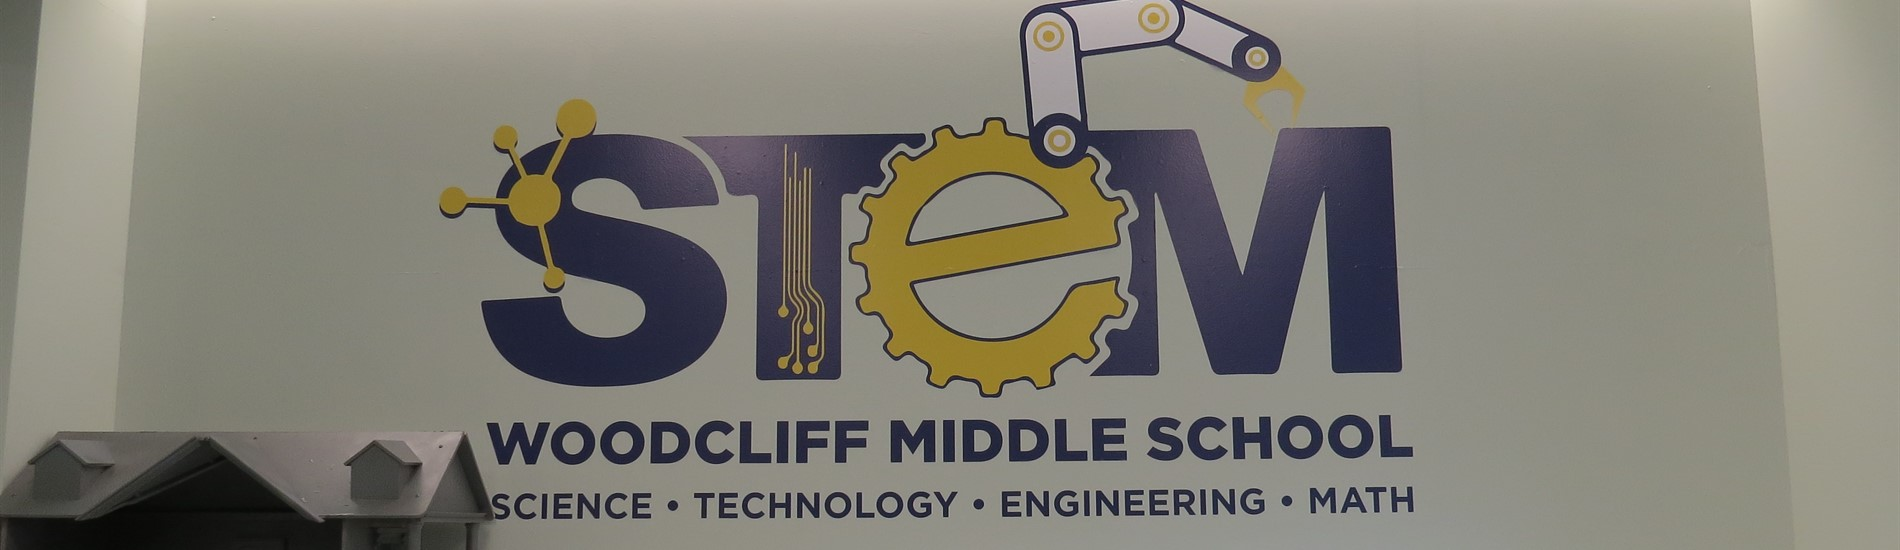 STEM logo/sign in our new STEM lab